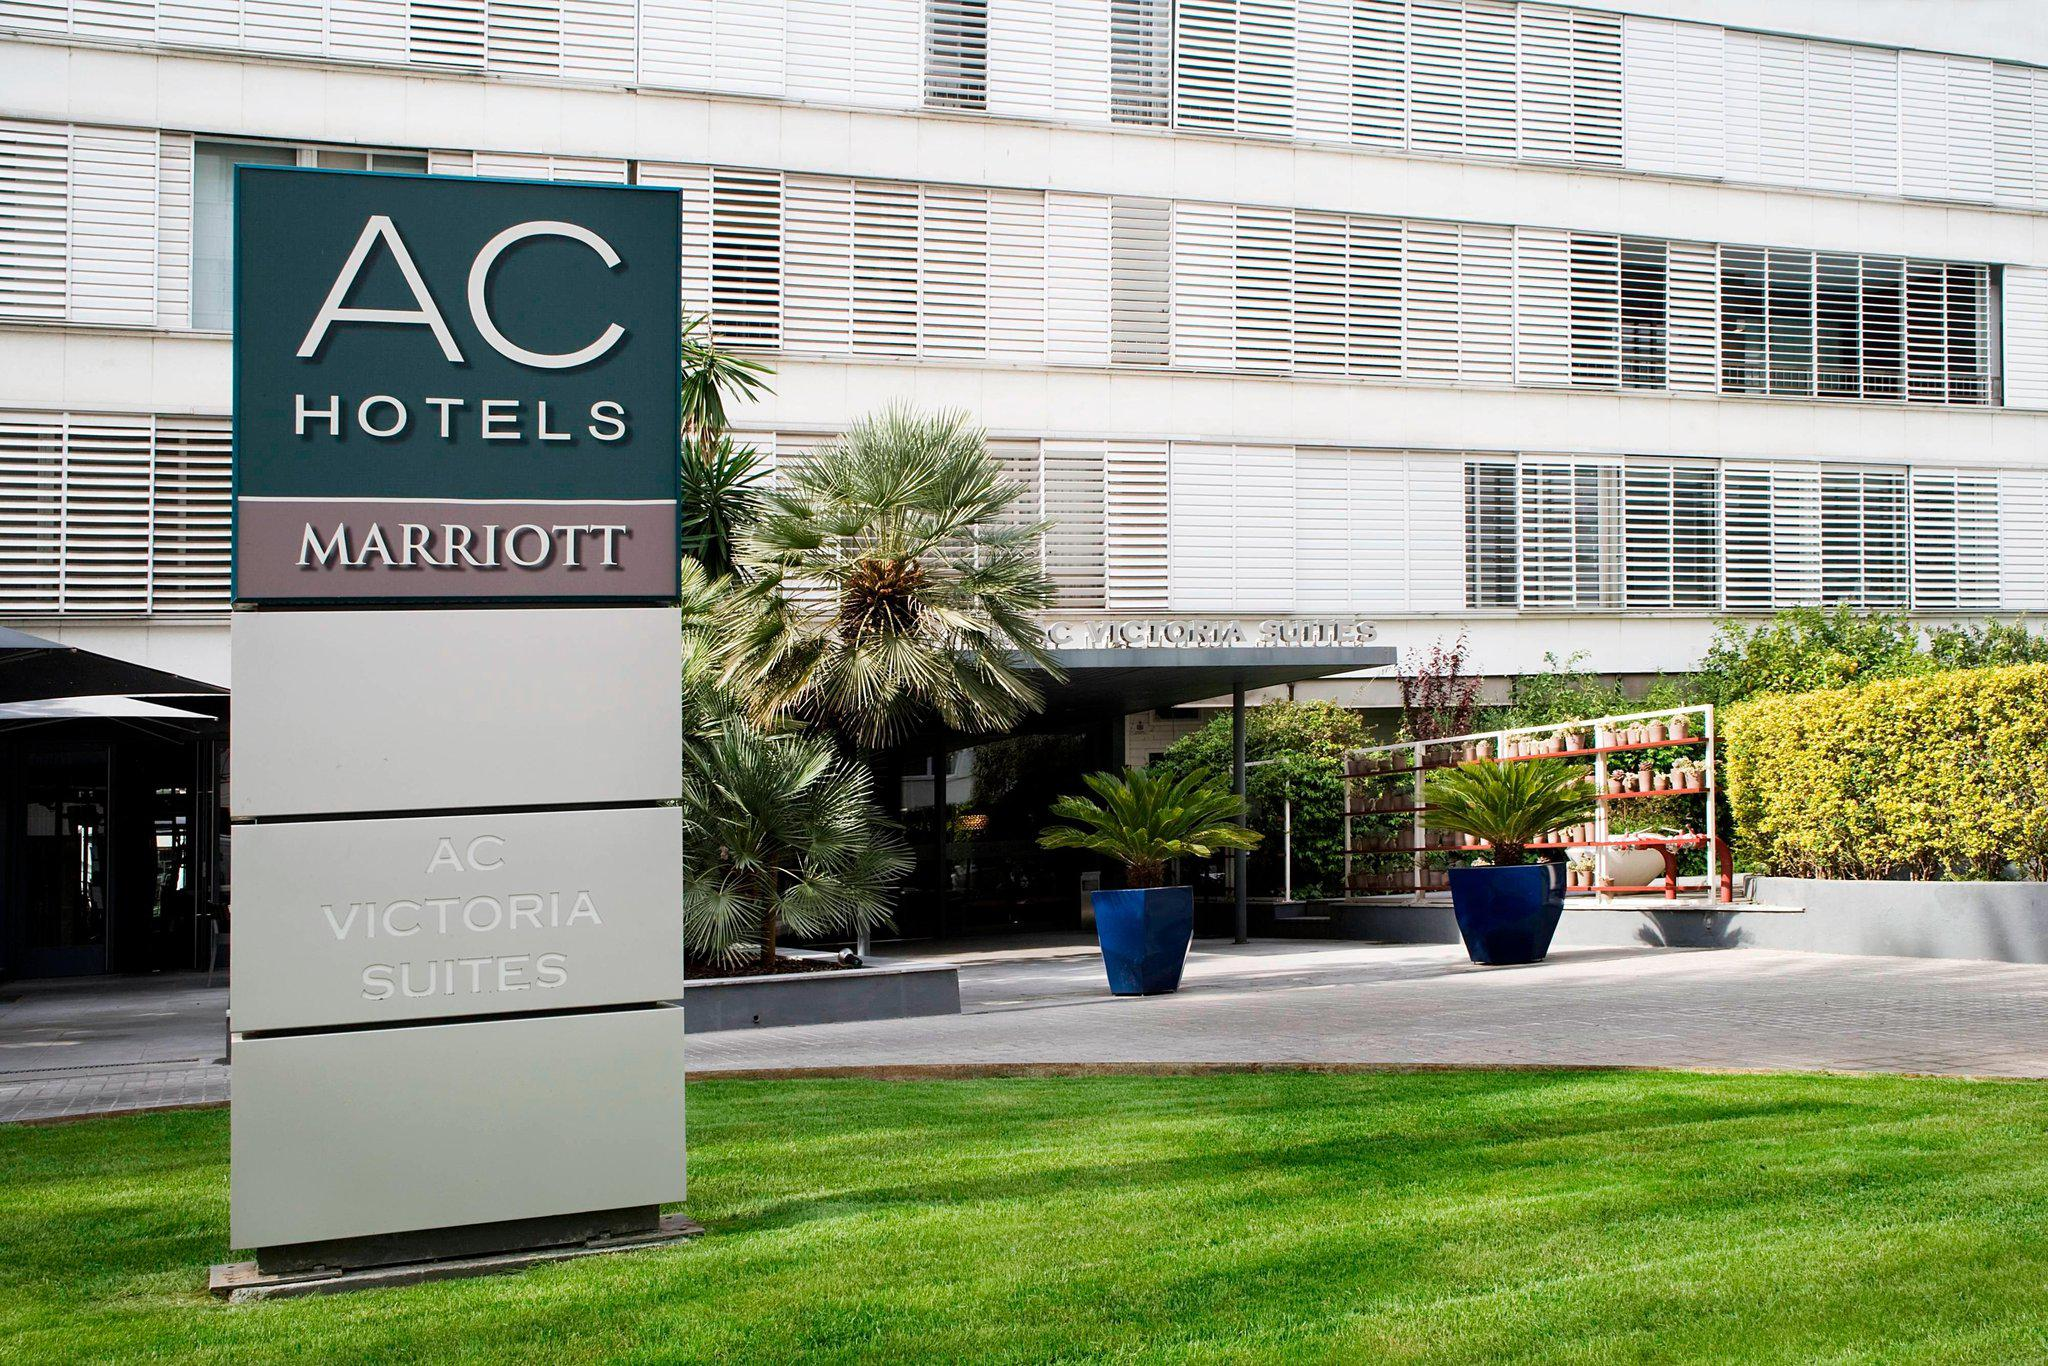 AC Hotel by Marriott Victoria Suites